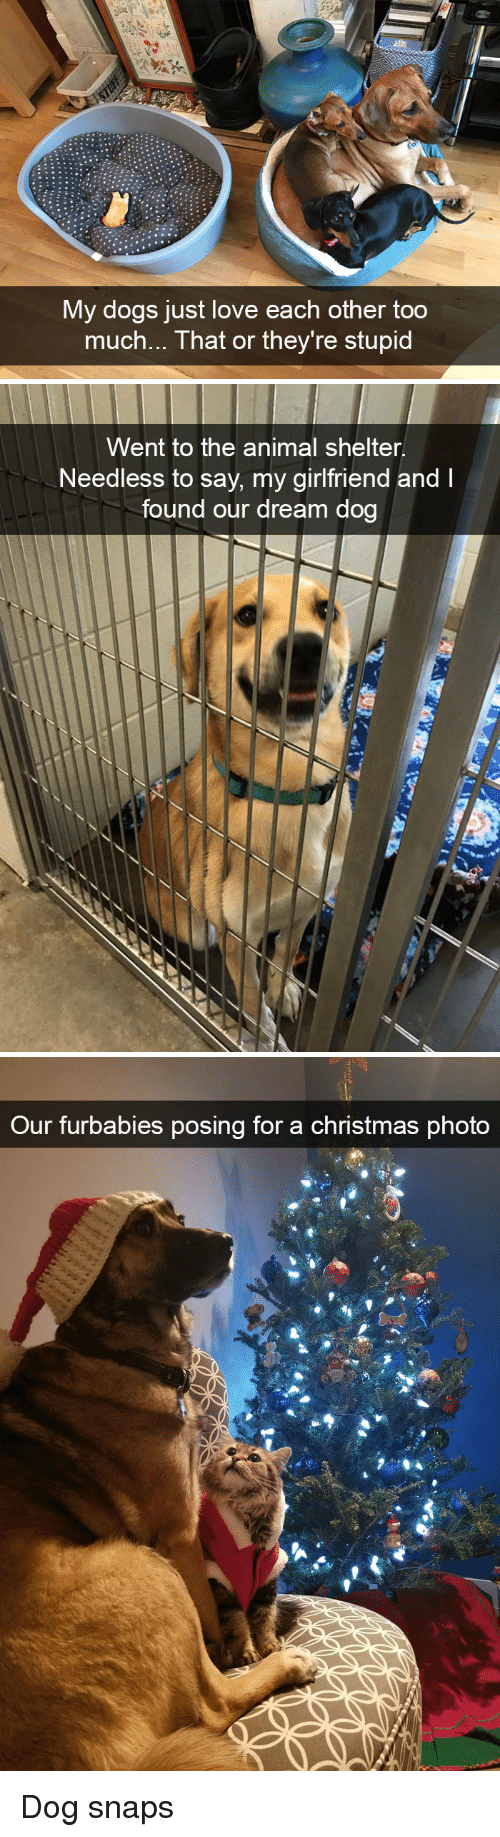 needless: My dogs just love each other too  much... That or they're stupid   Went to the animal shelter.  Needless to say, my girlfriend and I  found our dream dog   Our furbabies posing for a christmas phota Dog snaps